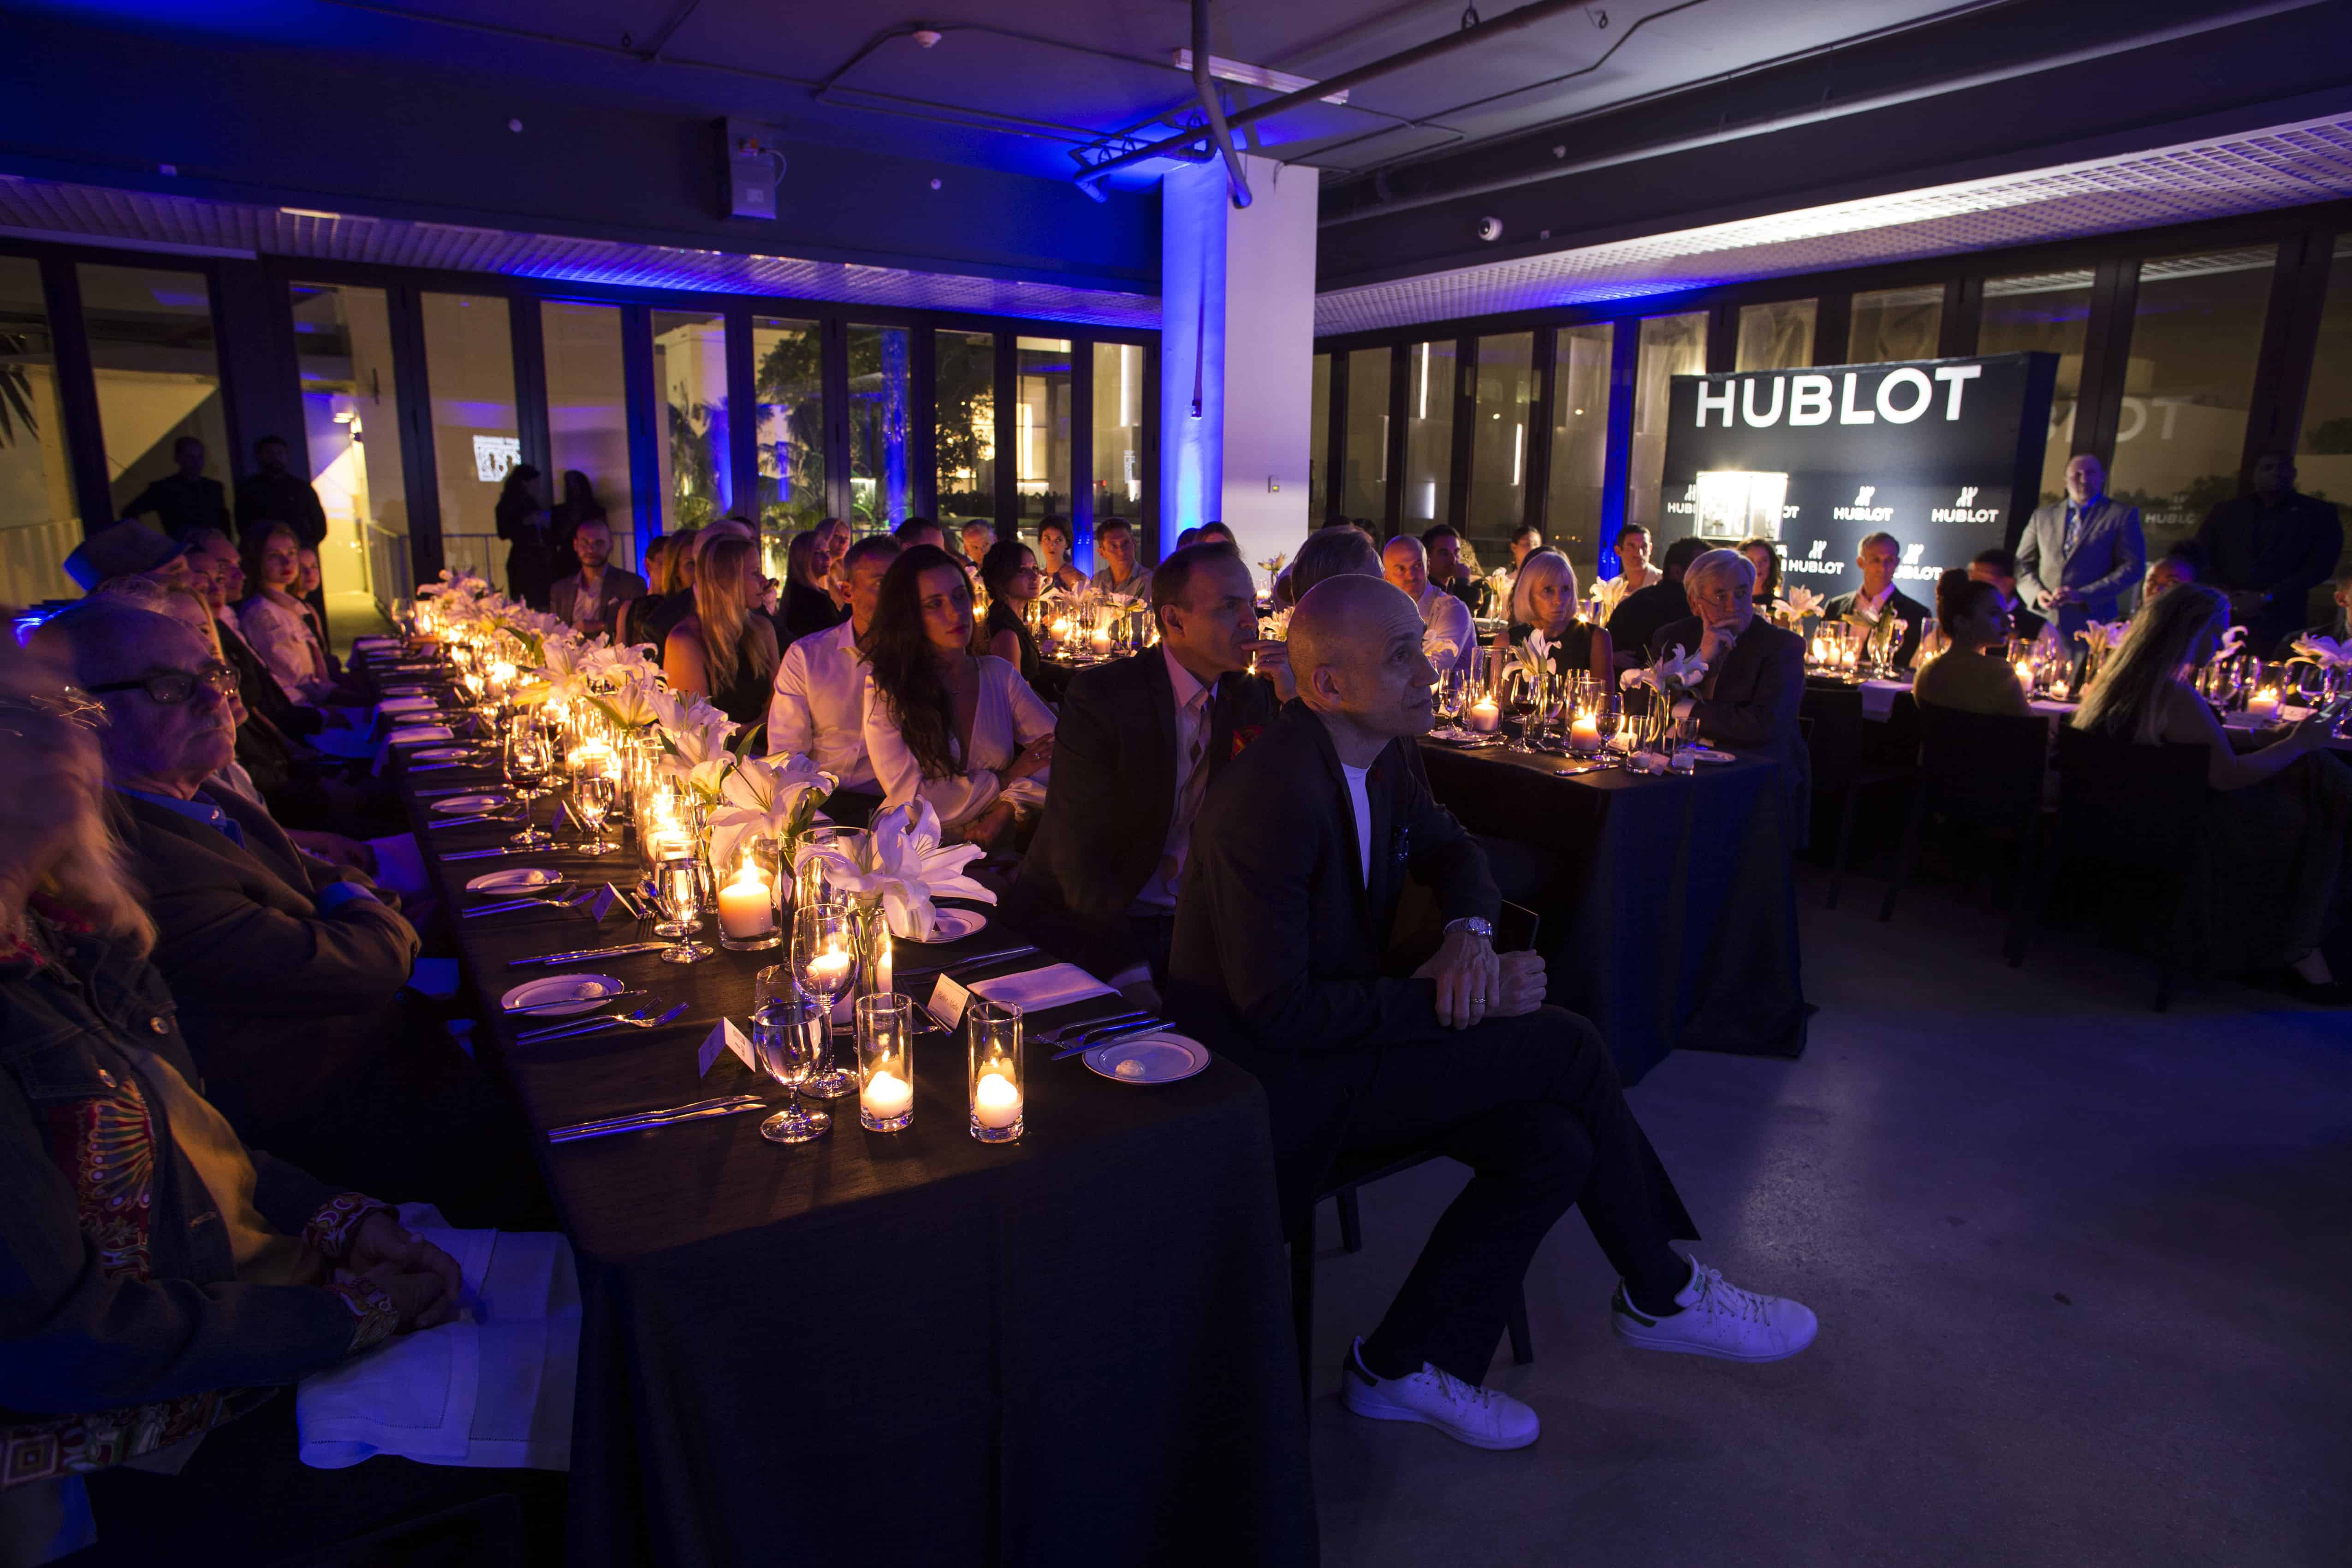 Dinner Atmosphere - What happens when Hublot and Best Buddies team up? Just watch!